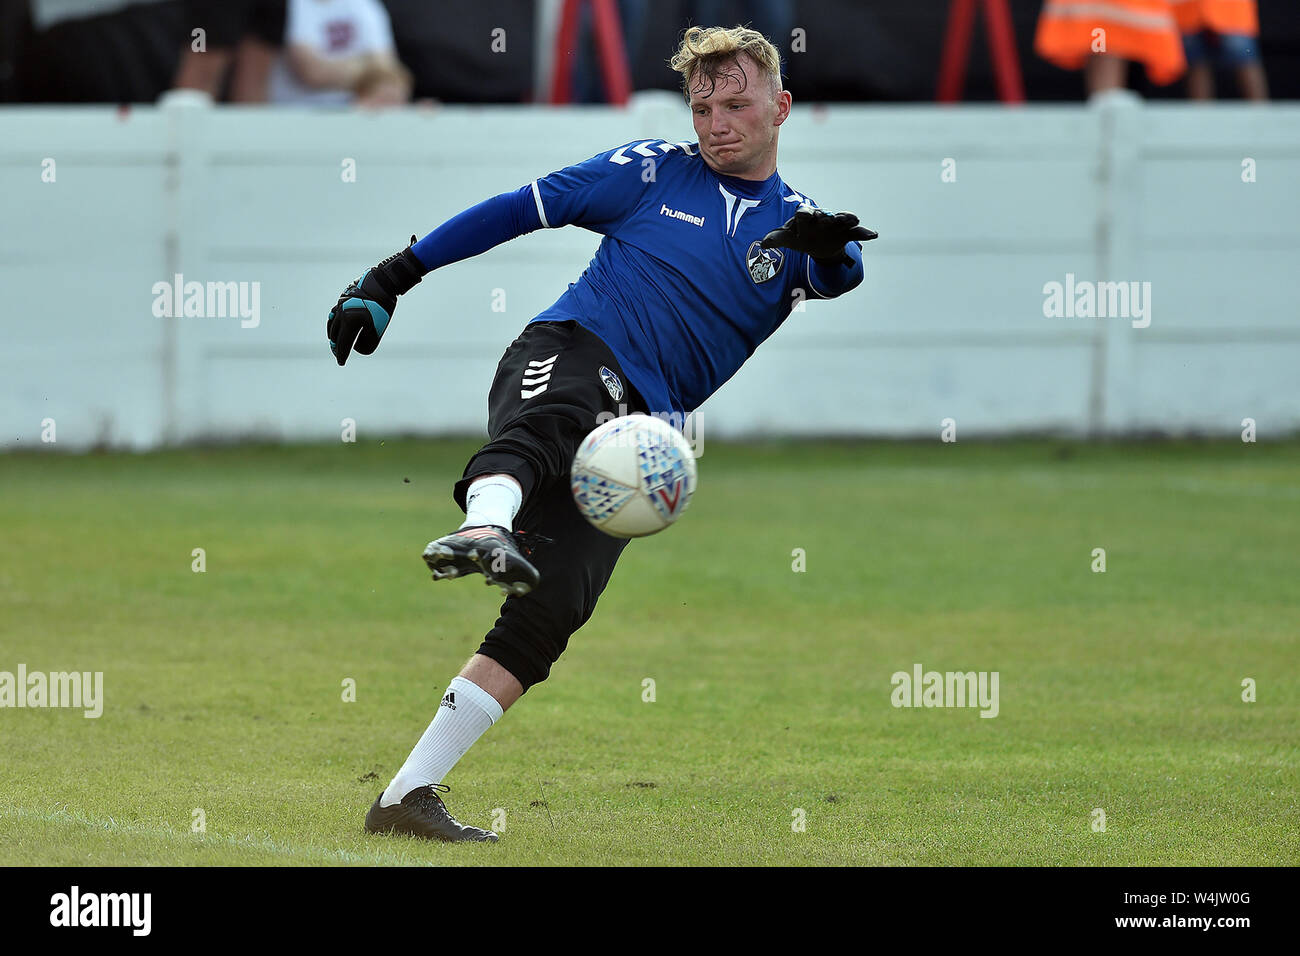 ASHTON UNDER LYNE, UK. 23rd July, 2019. Oldham Athletic's Ellis Allen in action during the Pre-season Friendly match between Ashton United and Oldham Athletic at Hurst Cross Stadium, Ashton under Lyne on Tuesday 23rd July 2019. (Credit: Eddie Garvey | MI News) Credit: MI News & Sport /Alamy Live News Stock Photo